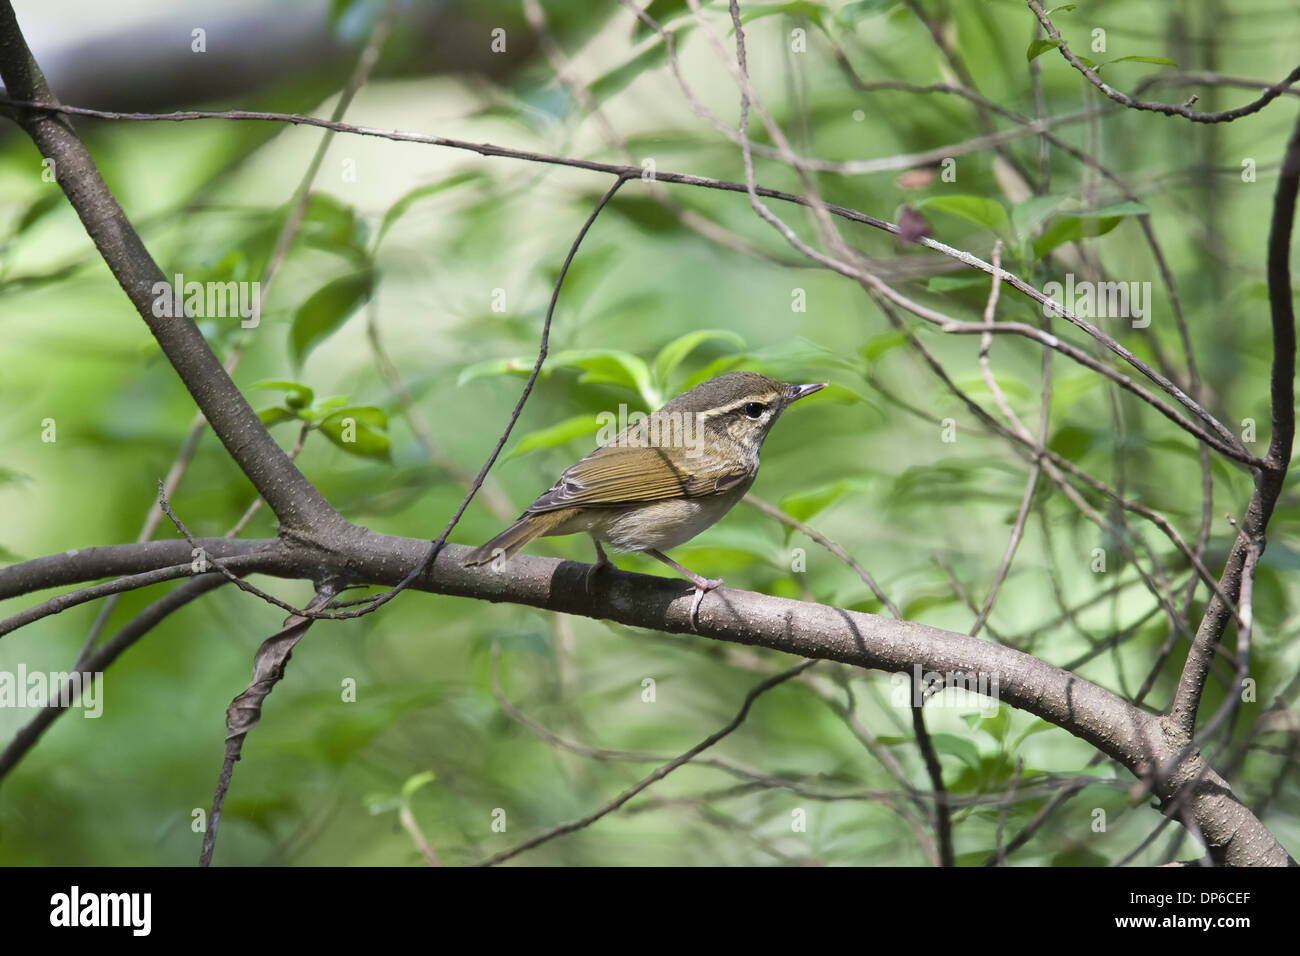 Pale-legged Leaf-warbler (Phylloscopus tenellipes) adult breeding plumage perched on branch Tai Po Kau New Territories Stock Photo